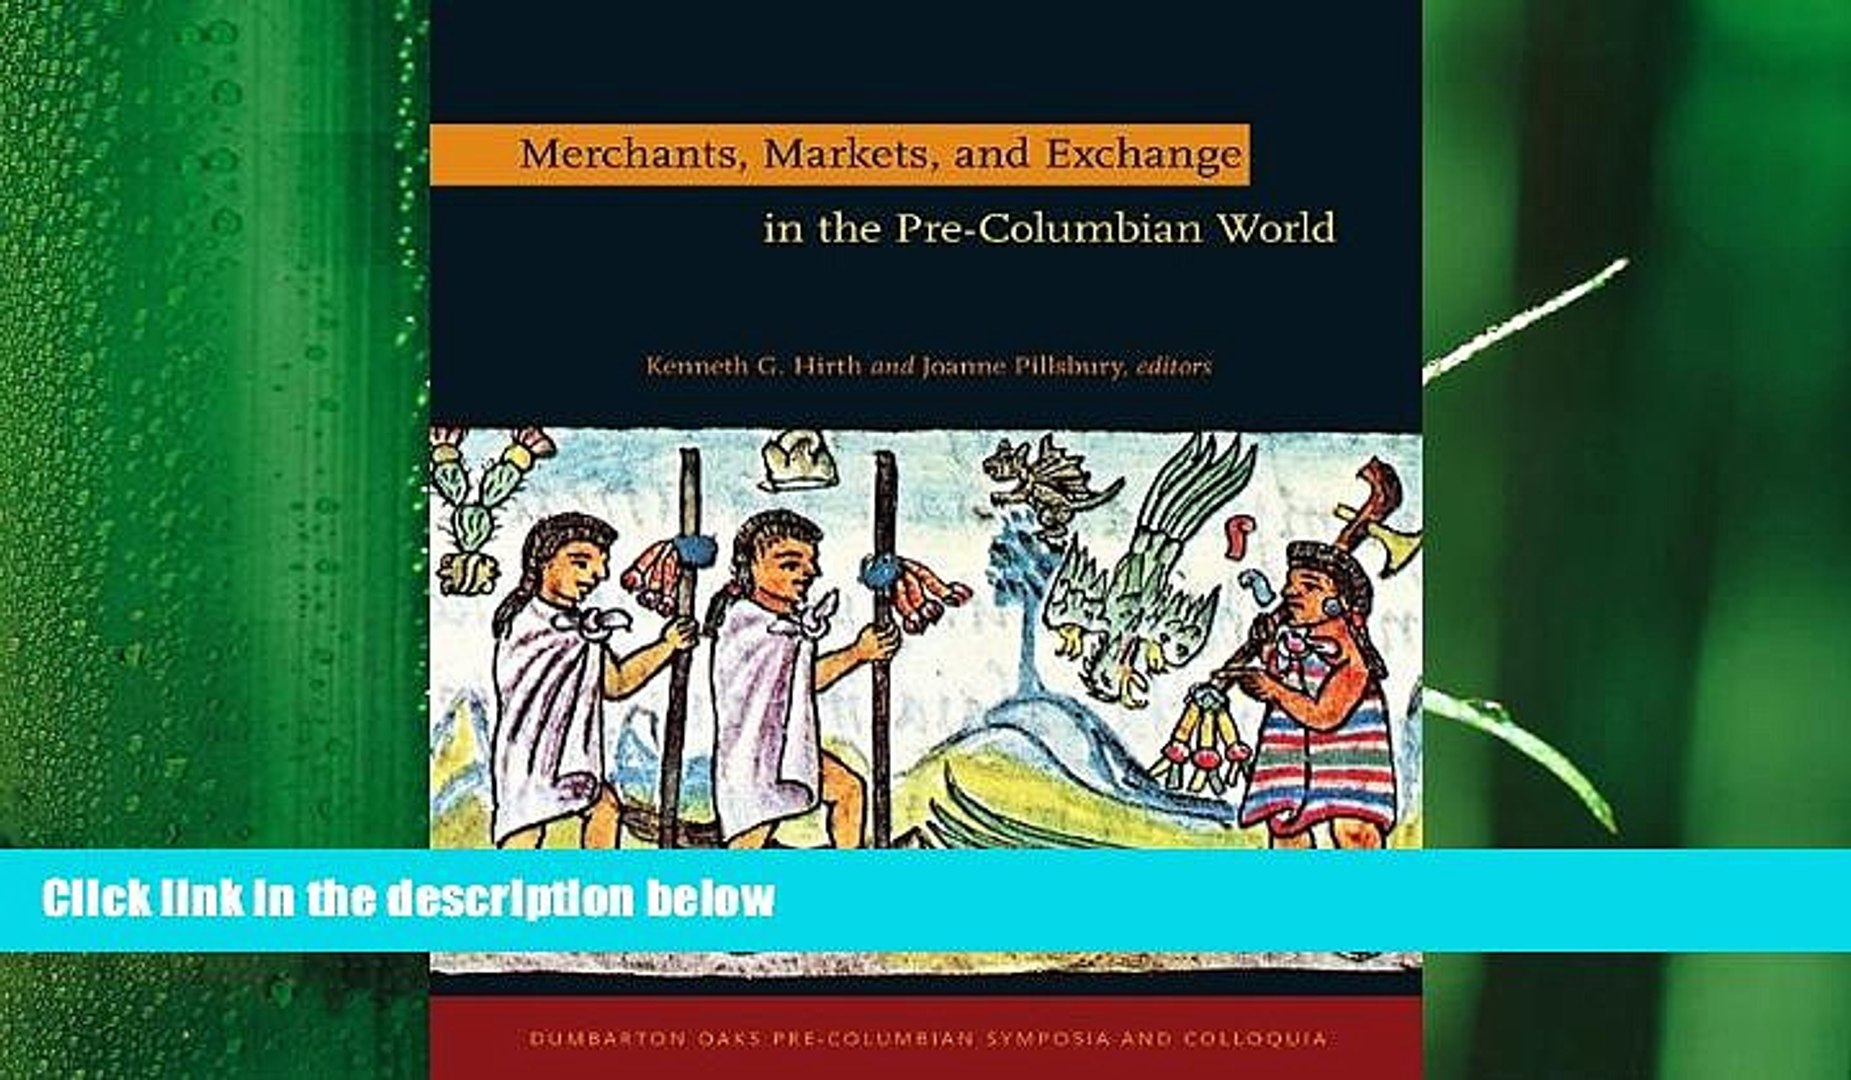 there is  Merchants, Markets, and Exchange in the Pre-Columbian World (Dumbarton Oaks